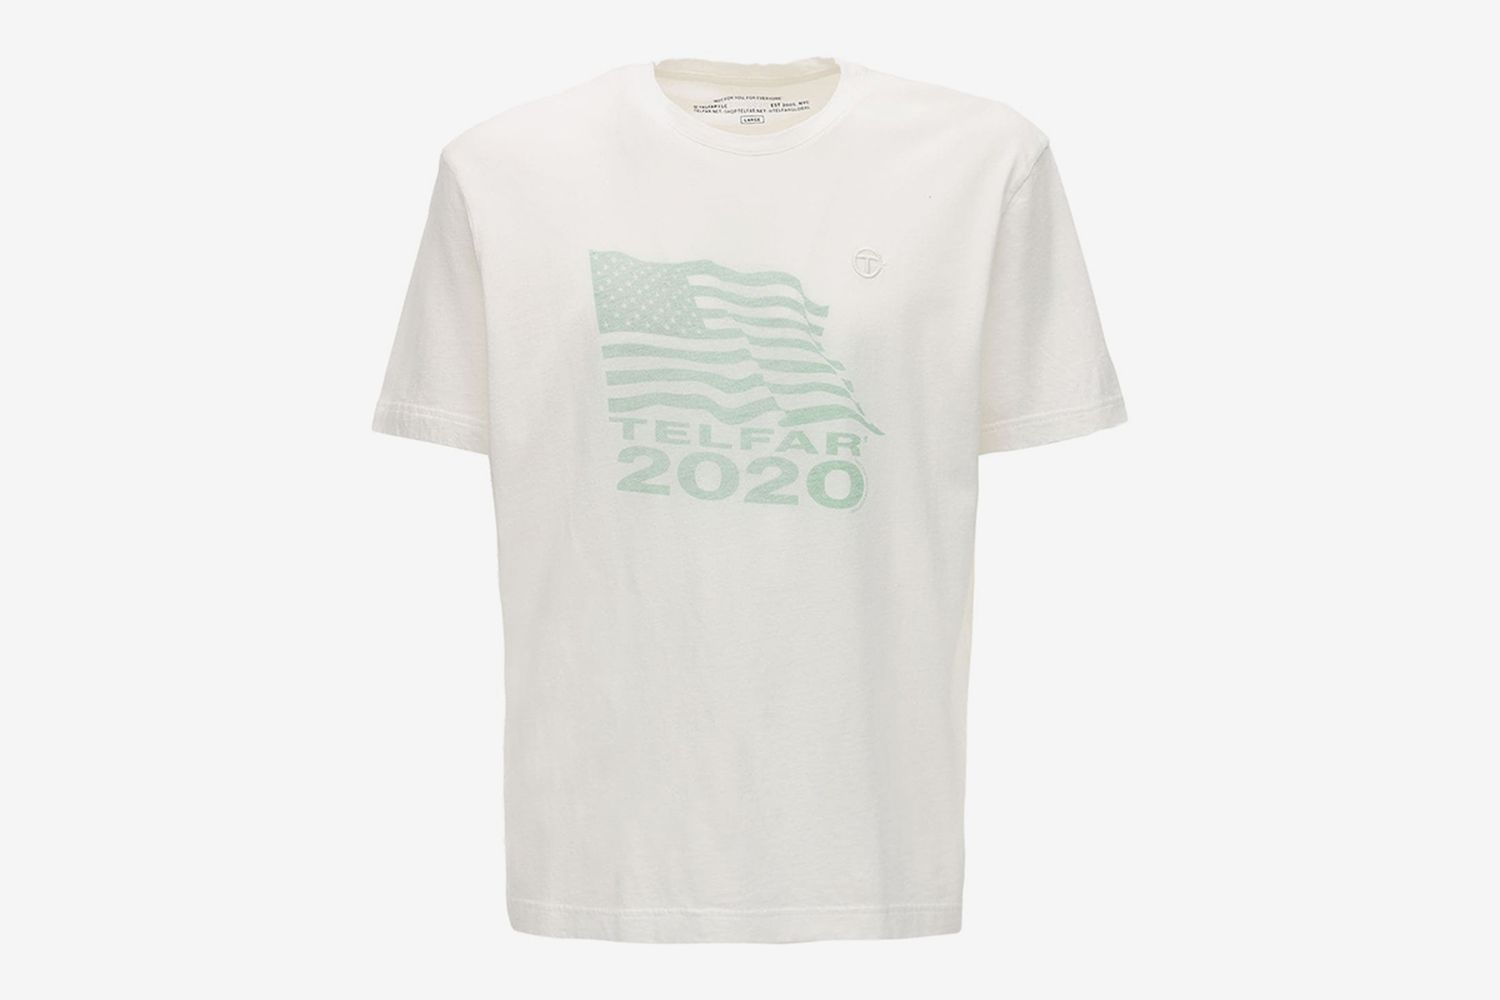 2020 Cotton Jersey T-Shirt